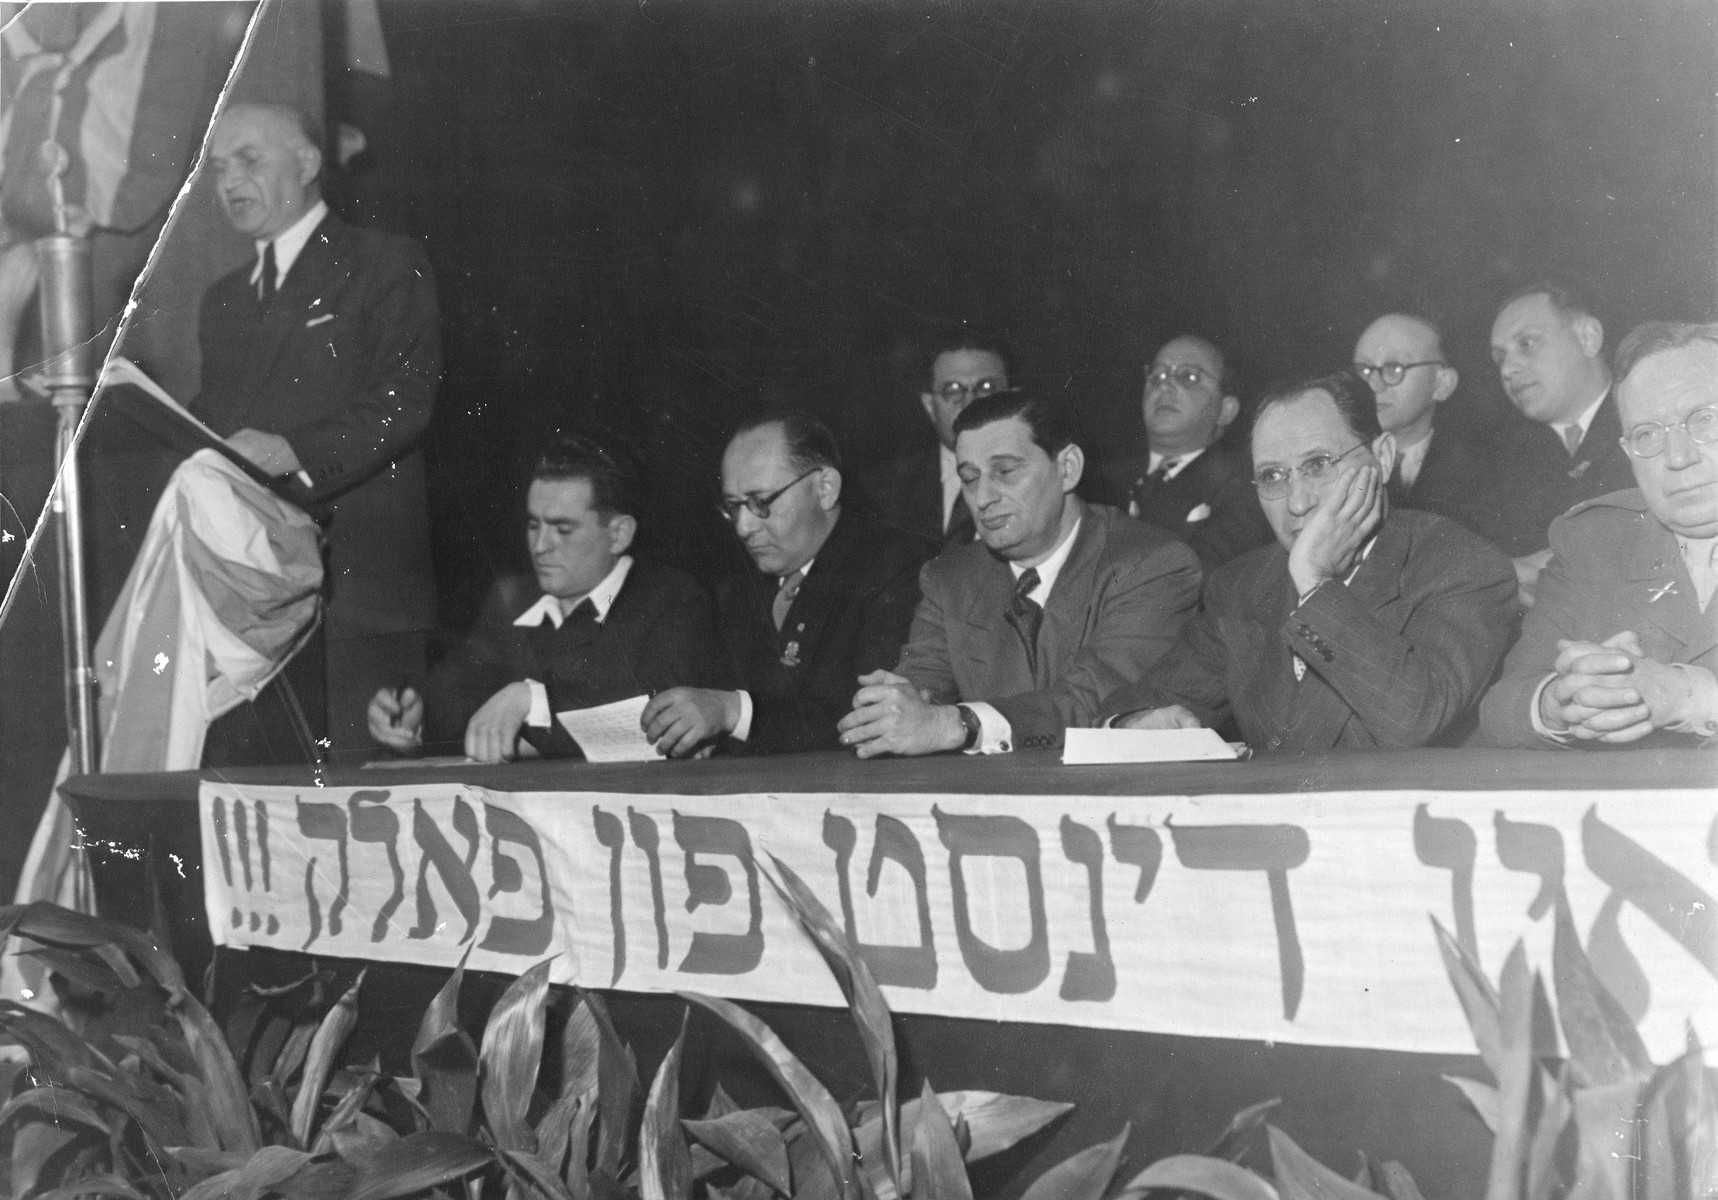 """Jewish leaders attend a post-war Zionist conference in Munich.    Among those pictured is Joseph Schwartz (third from the right).  The Yiddish banner in front of the dias reads, """"In service of the Jewish people."""""""